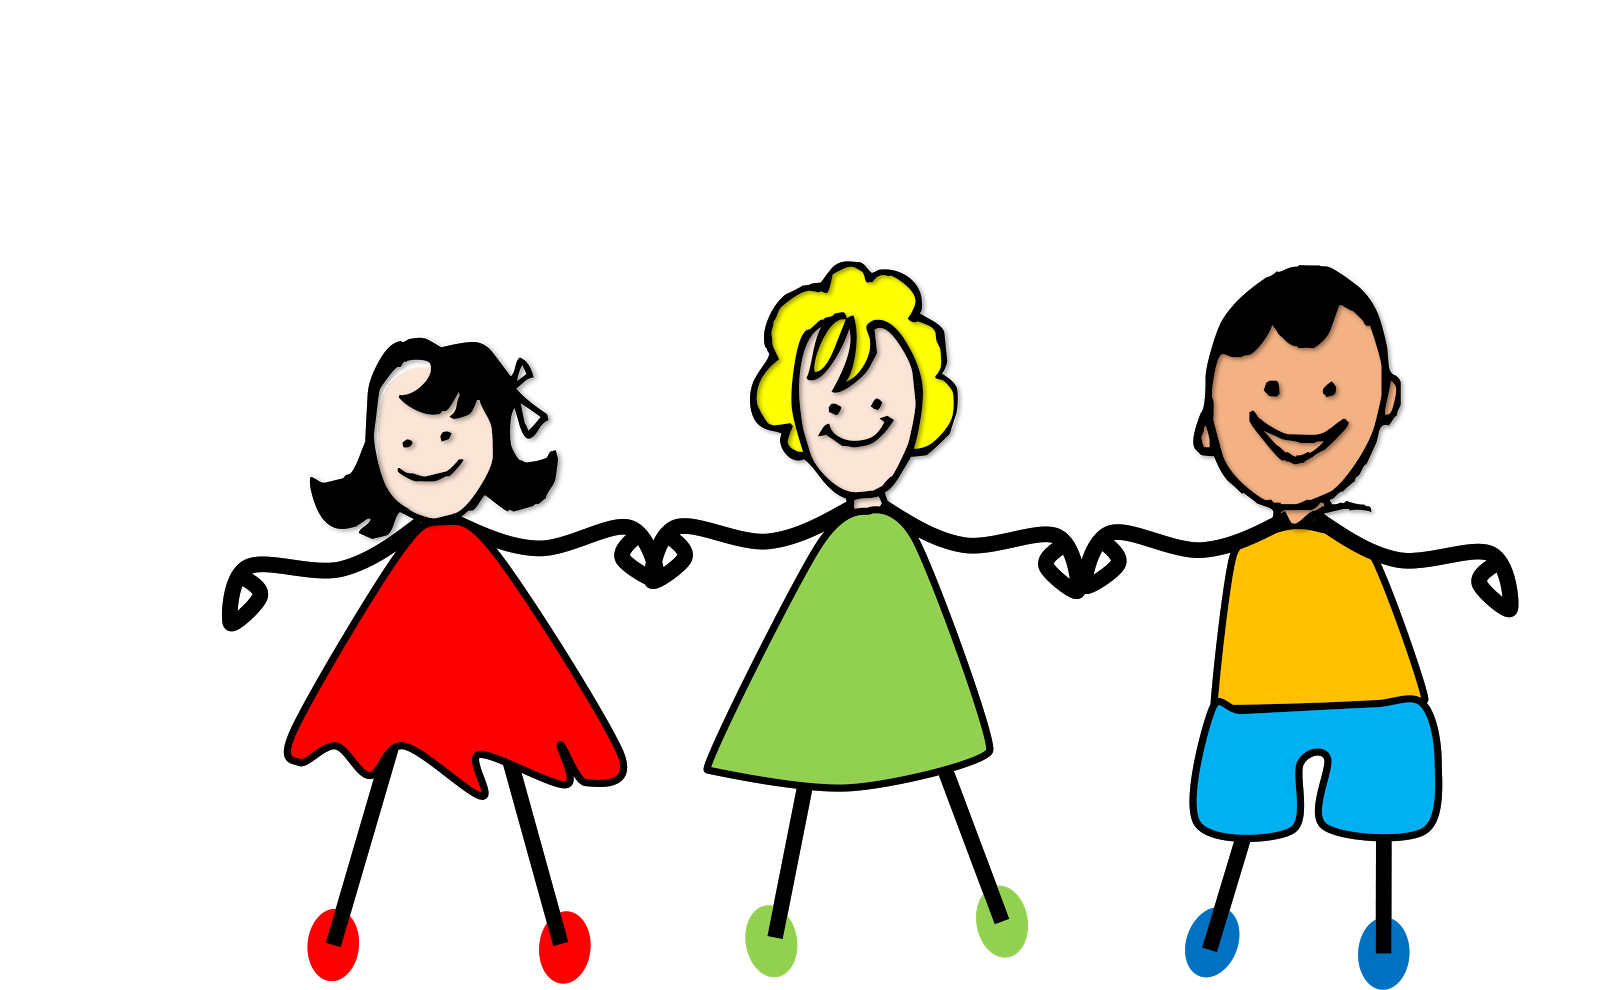 Kids holding hands png. Collection of clipart